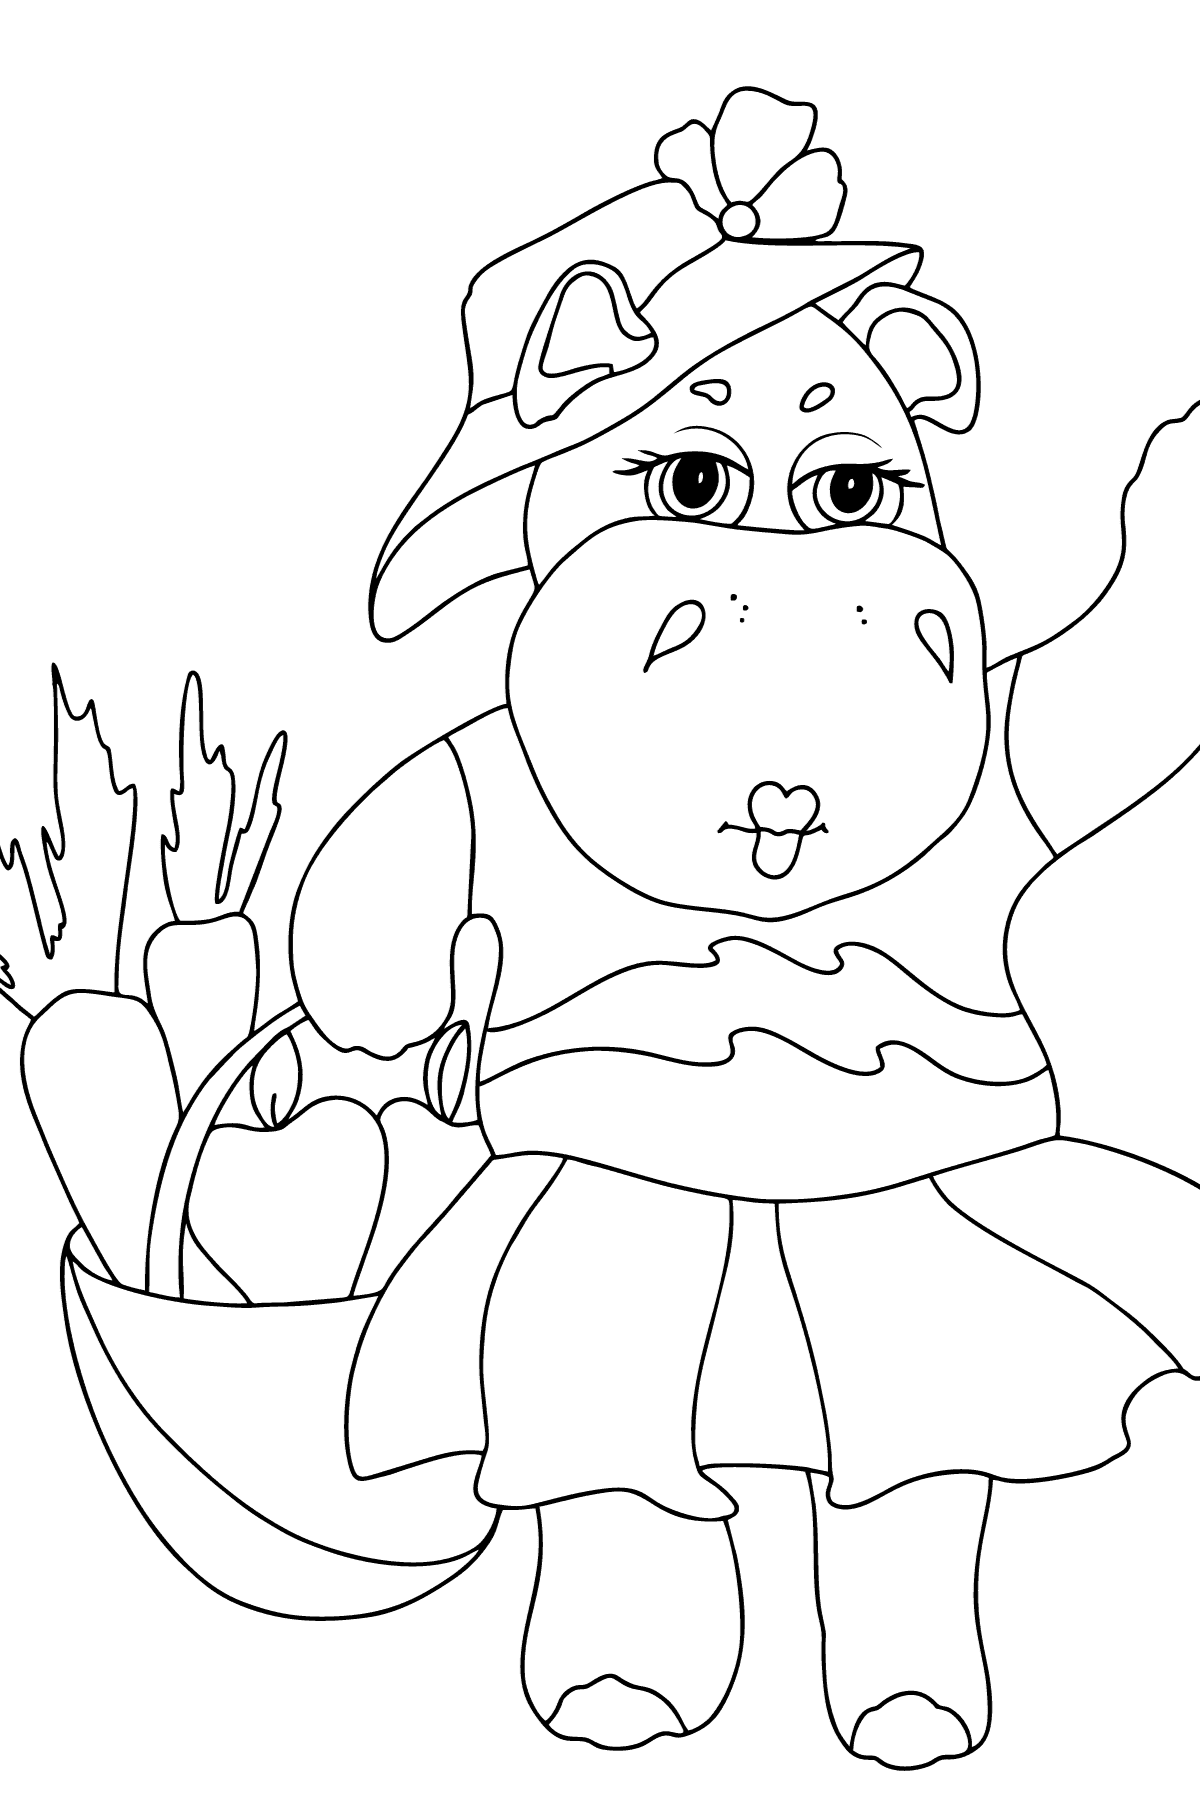 Coloring Page - A Hippo with a Basket of Carrots and Apples - Check it Out for Kids